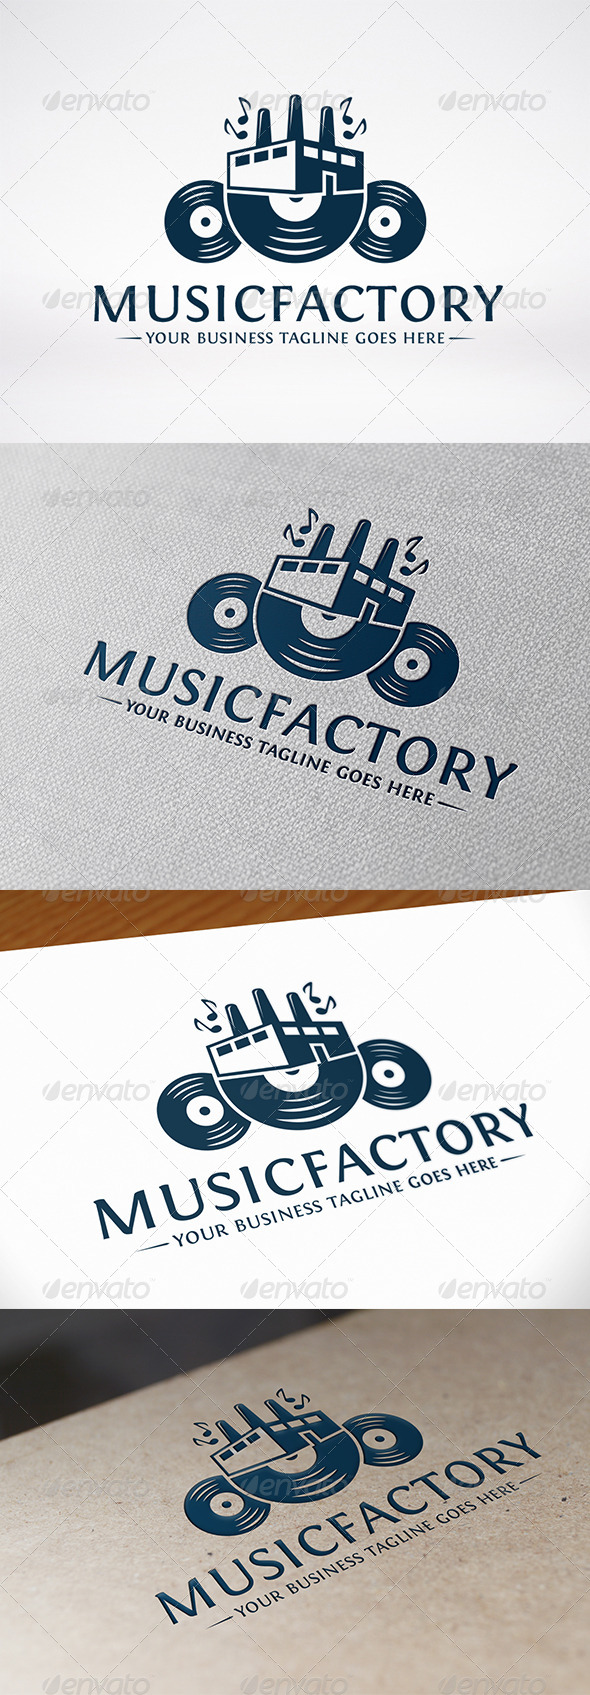 Factory Logo Graphics, Designs & Templates from GraphicRiver